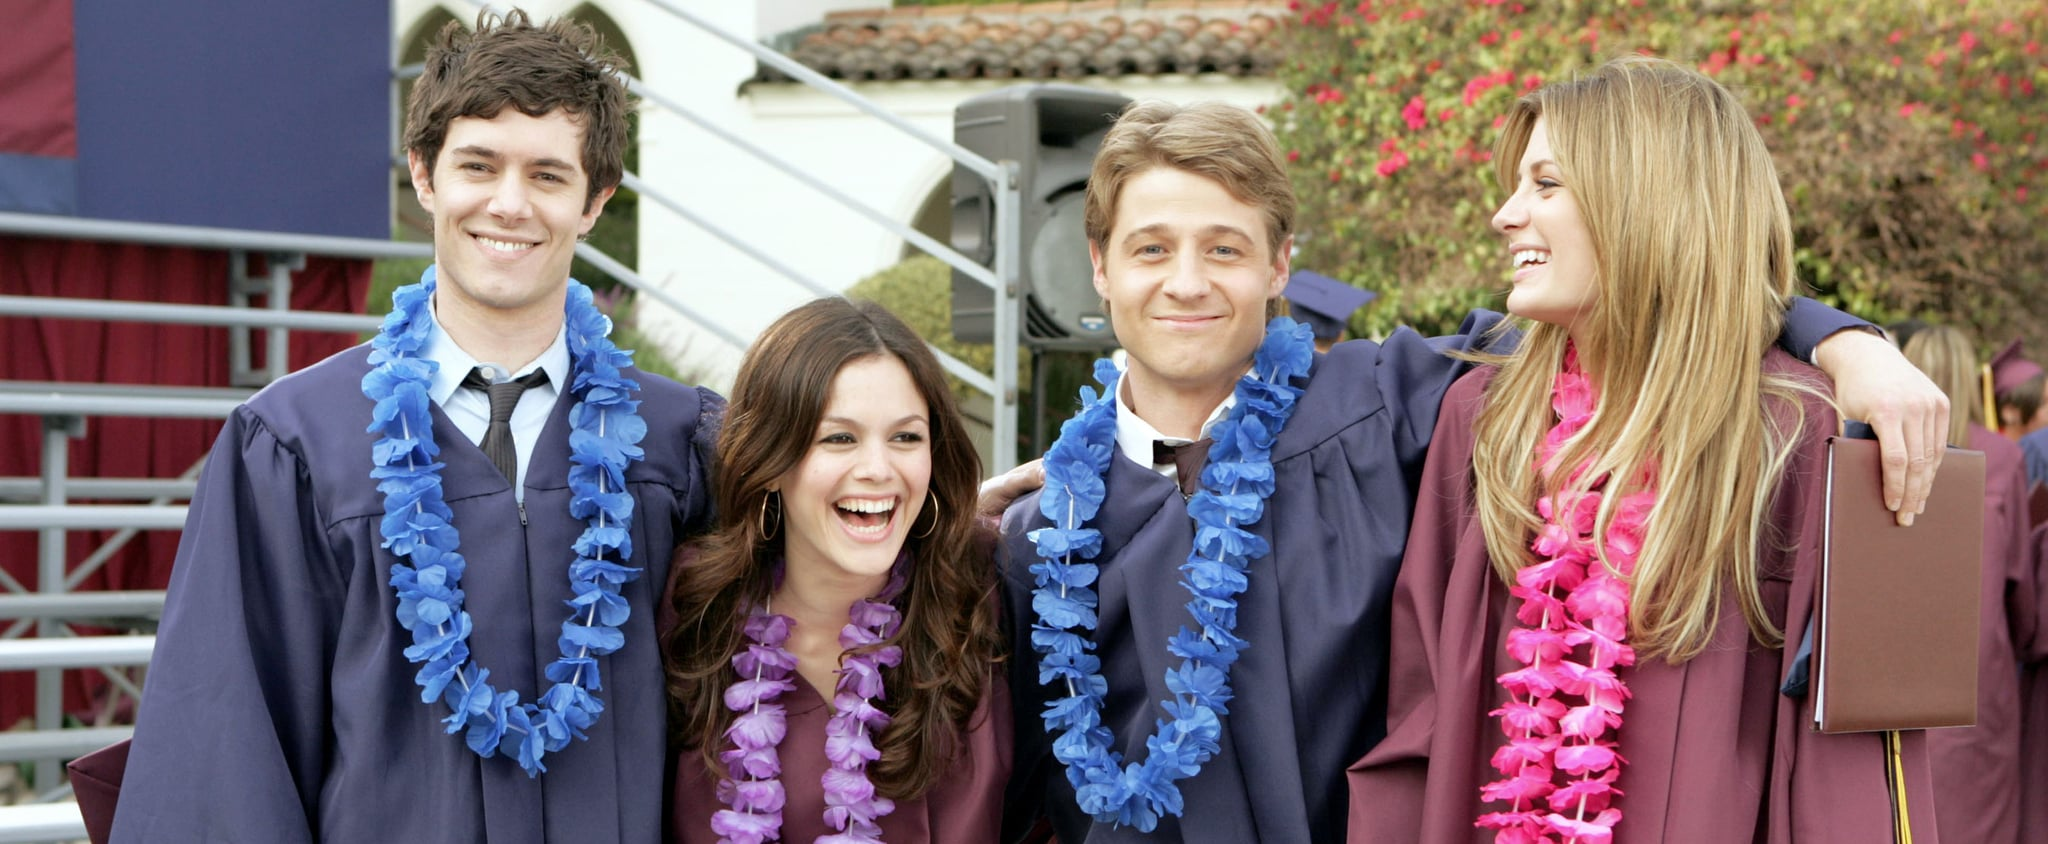 Best Songs From The O.C. Soundtrack